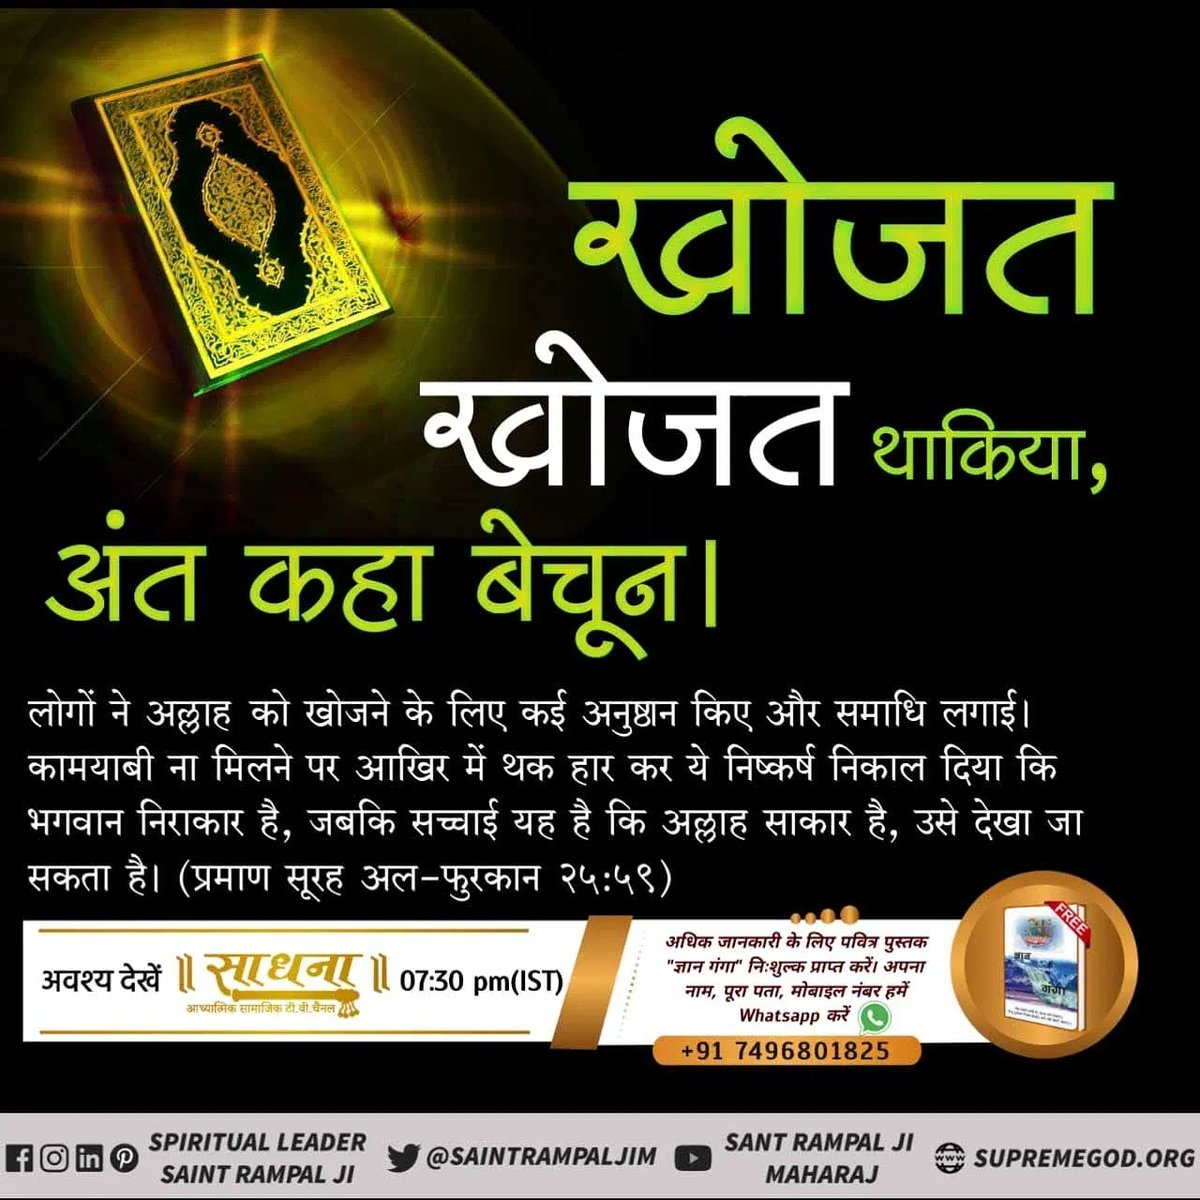 #GodMorningThursday #ThursdayThoughts #thursdaymorning It Is Written In Yajurved Adhyay 19 Mantra 25, 26that a True Guru will elaborate the incomplete sentences of the Vedas i.e the coded words  Tv-7:30pm @SaintRampalJiM